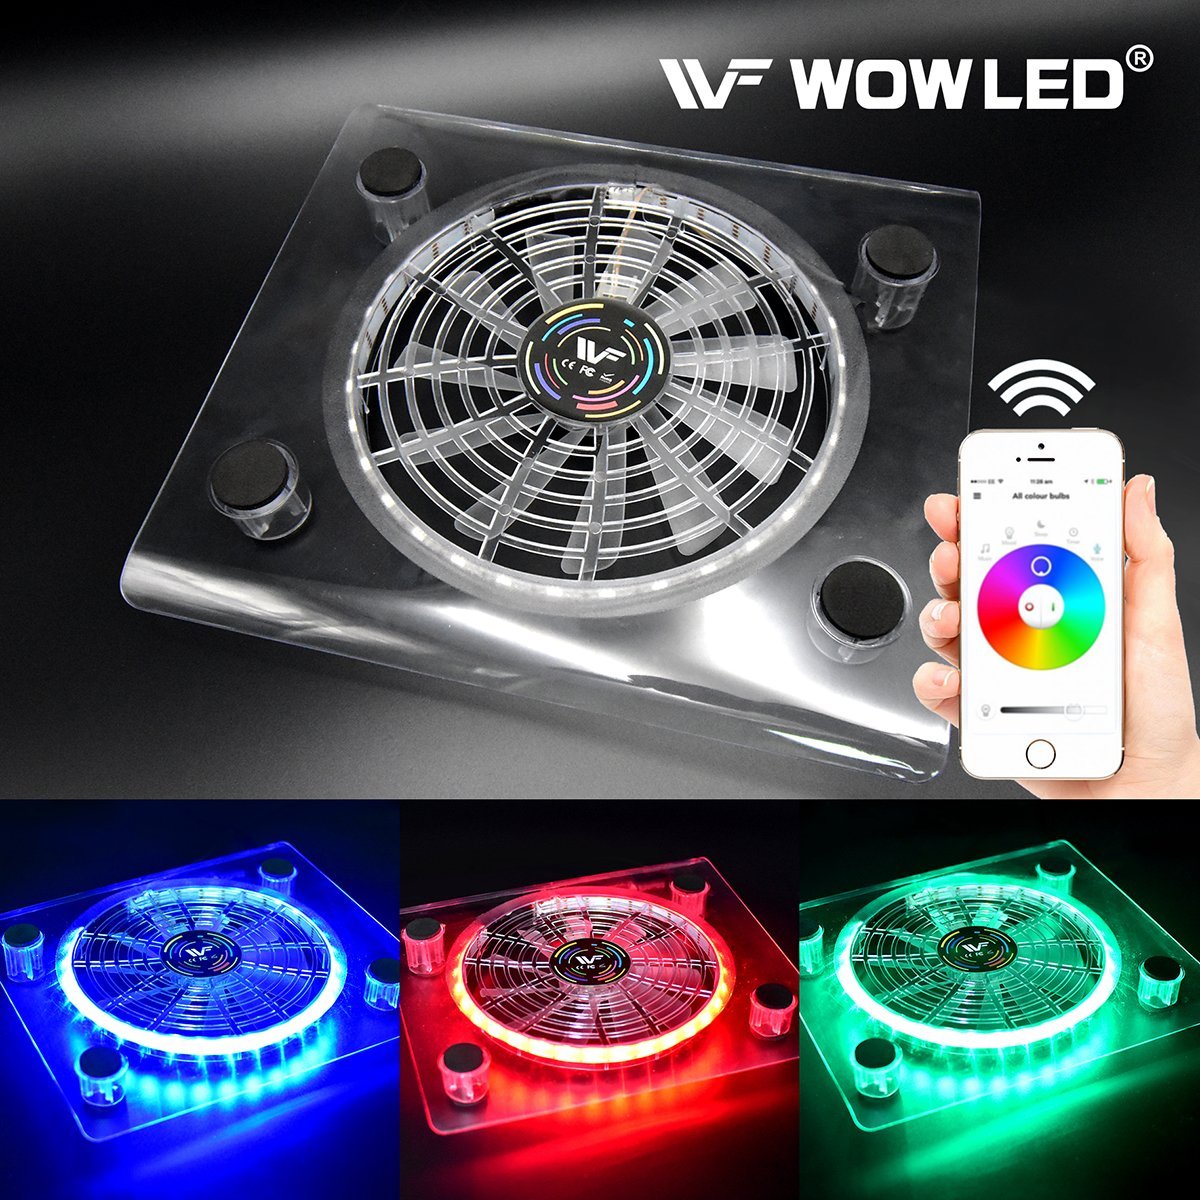 Wowled Bluetooth Wireless Control Pc Case Cooling Fan Usb Rgb Led Pad Cooler Laptop Notebook Computer